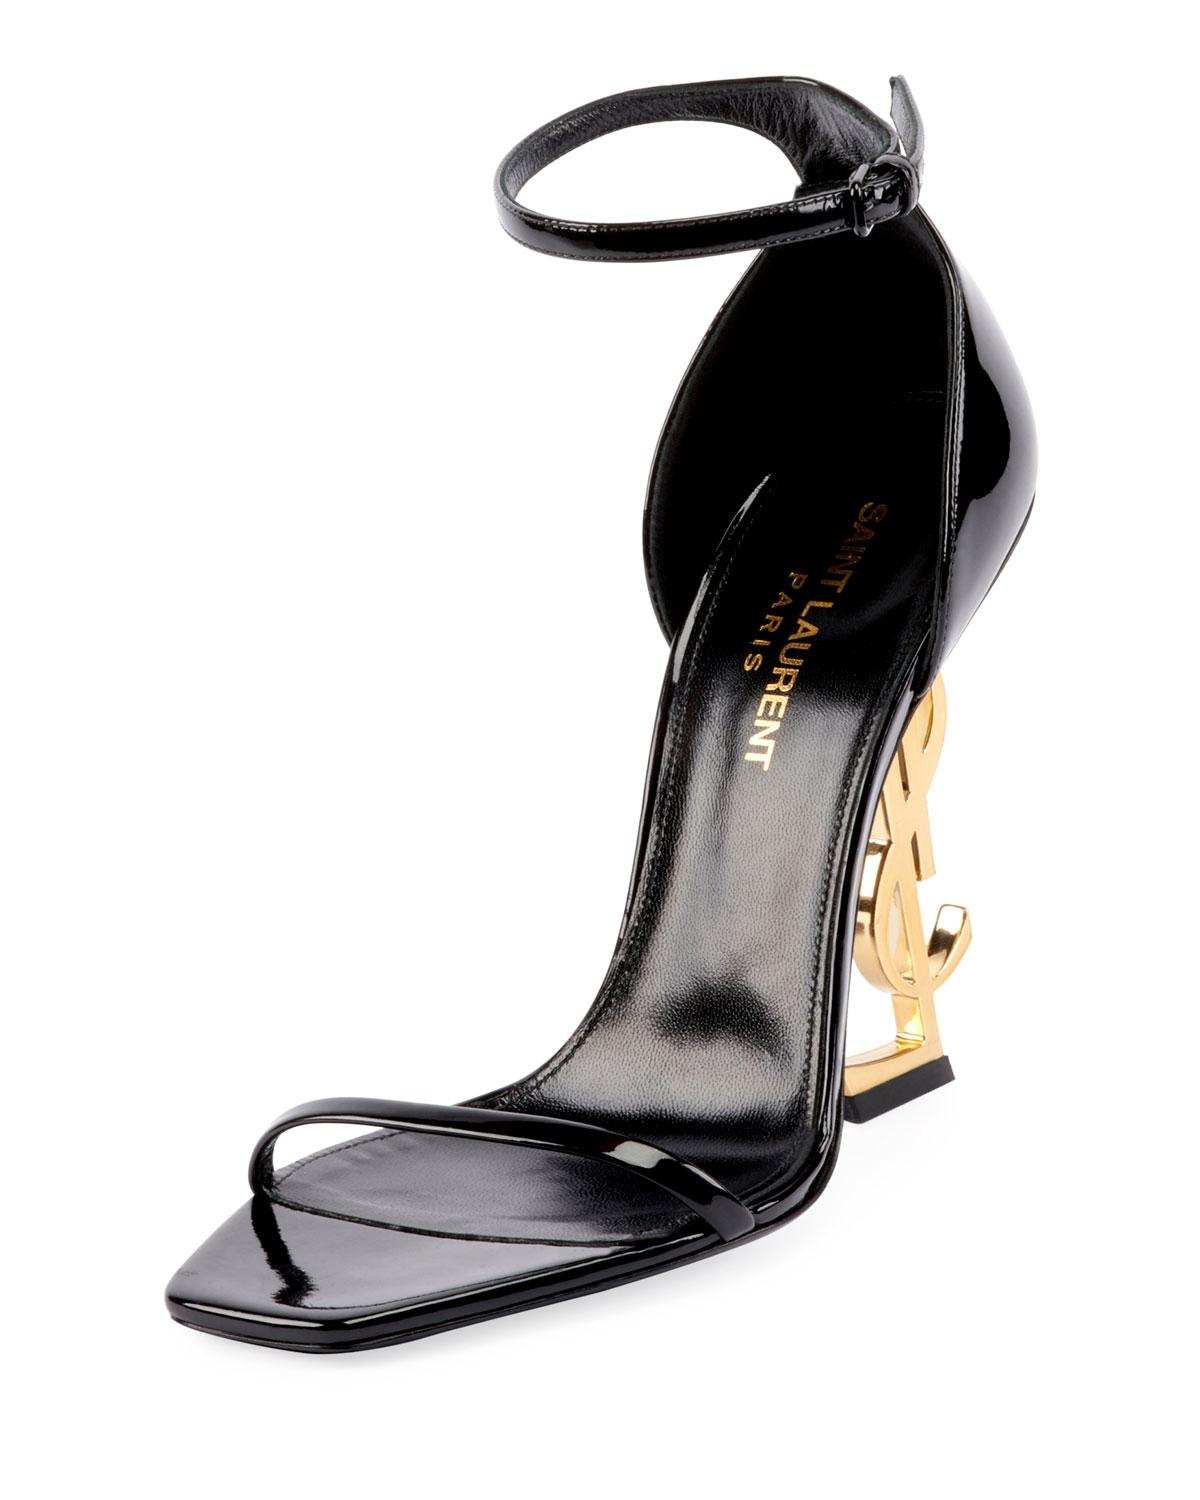 0ad0789a1154 Lyst - Saint Laurent Opyum Ysl Logo-heel Sandals With Golden ...